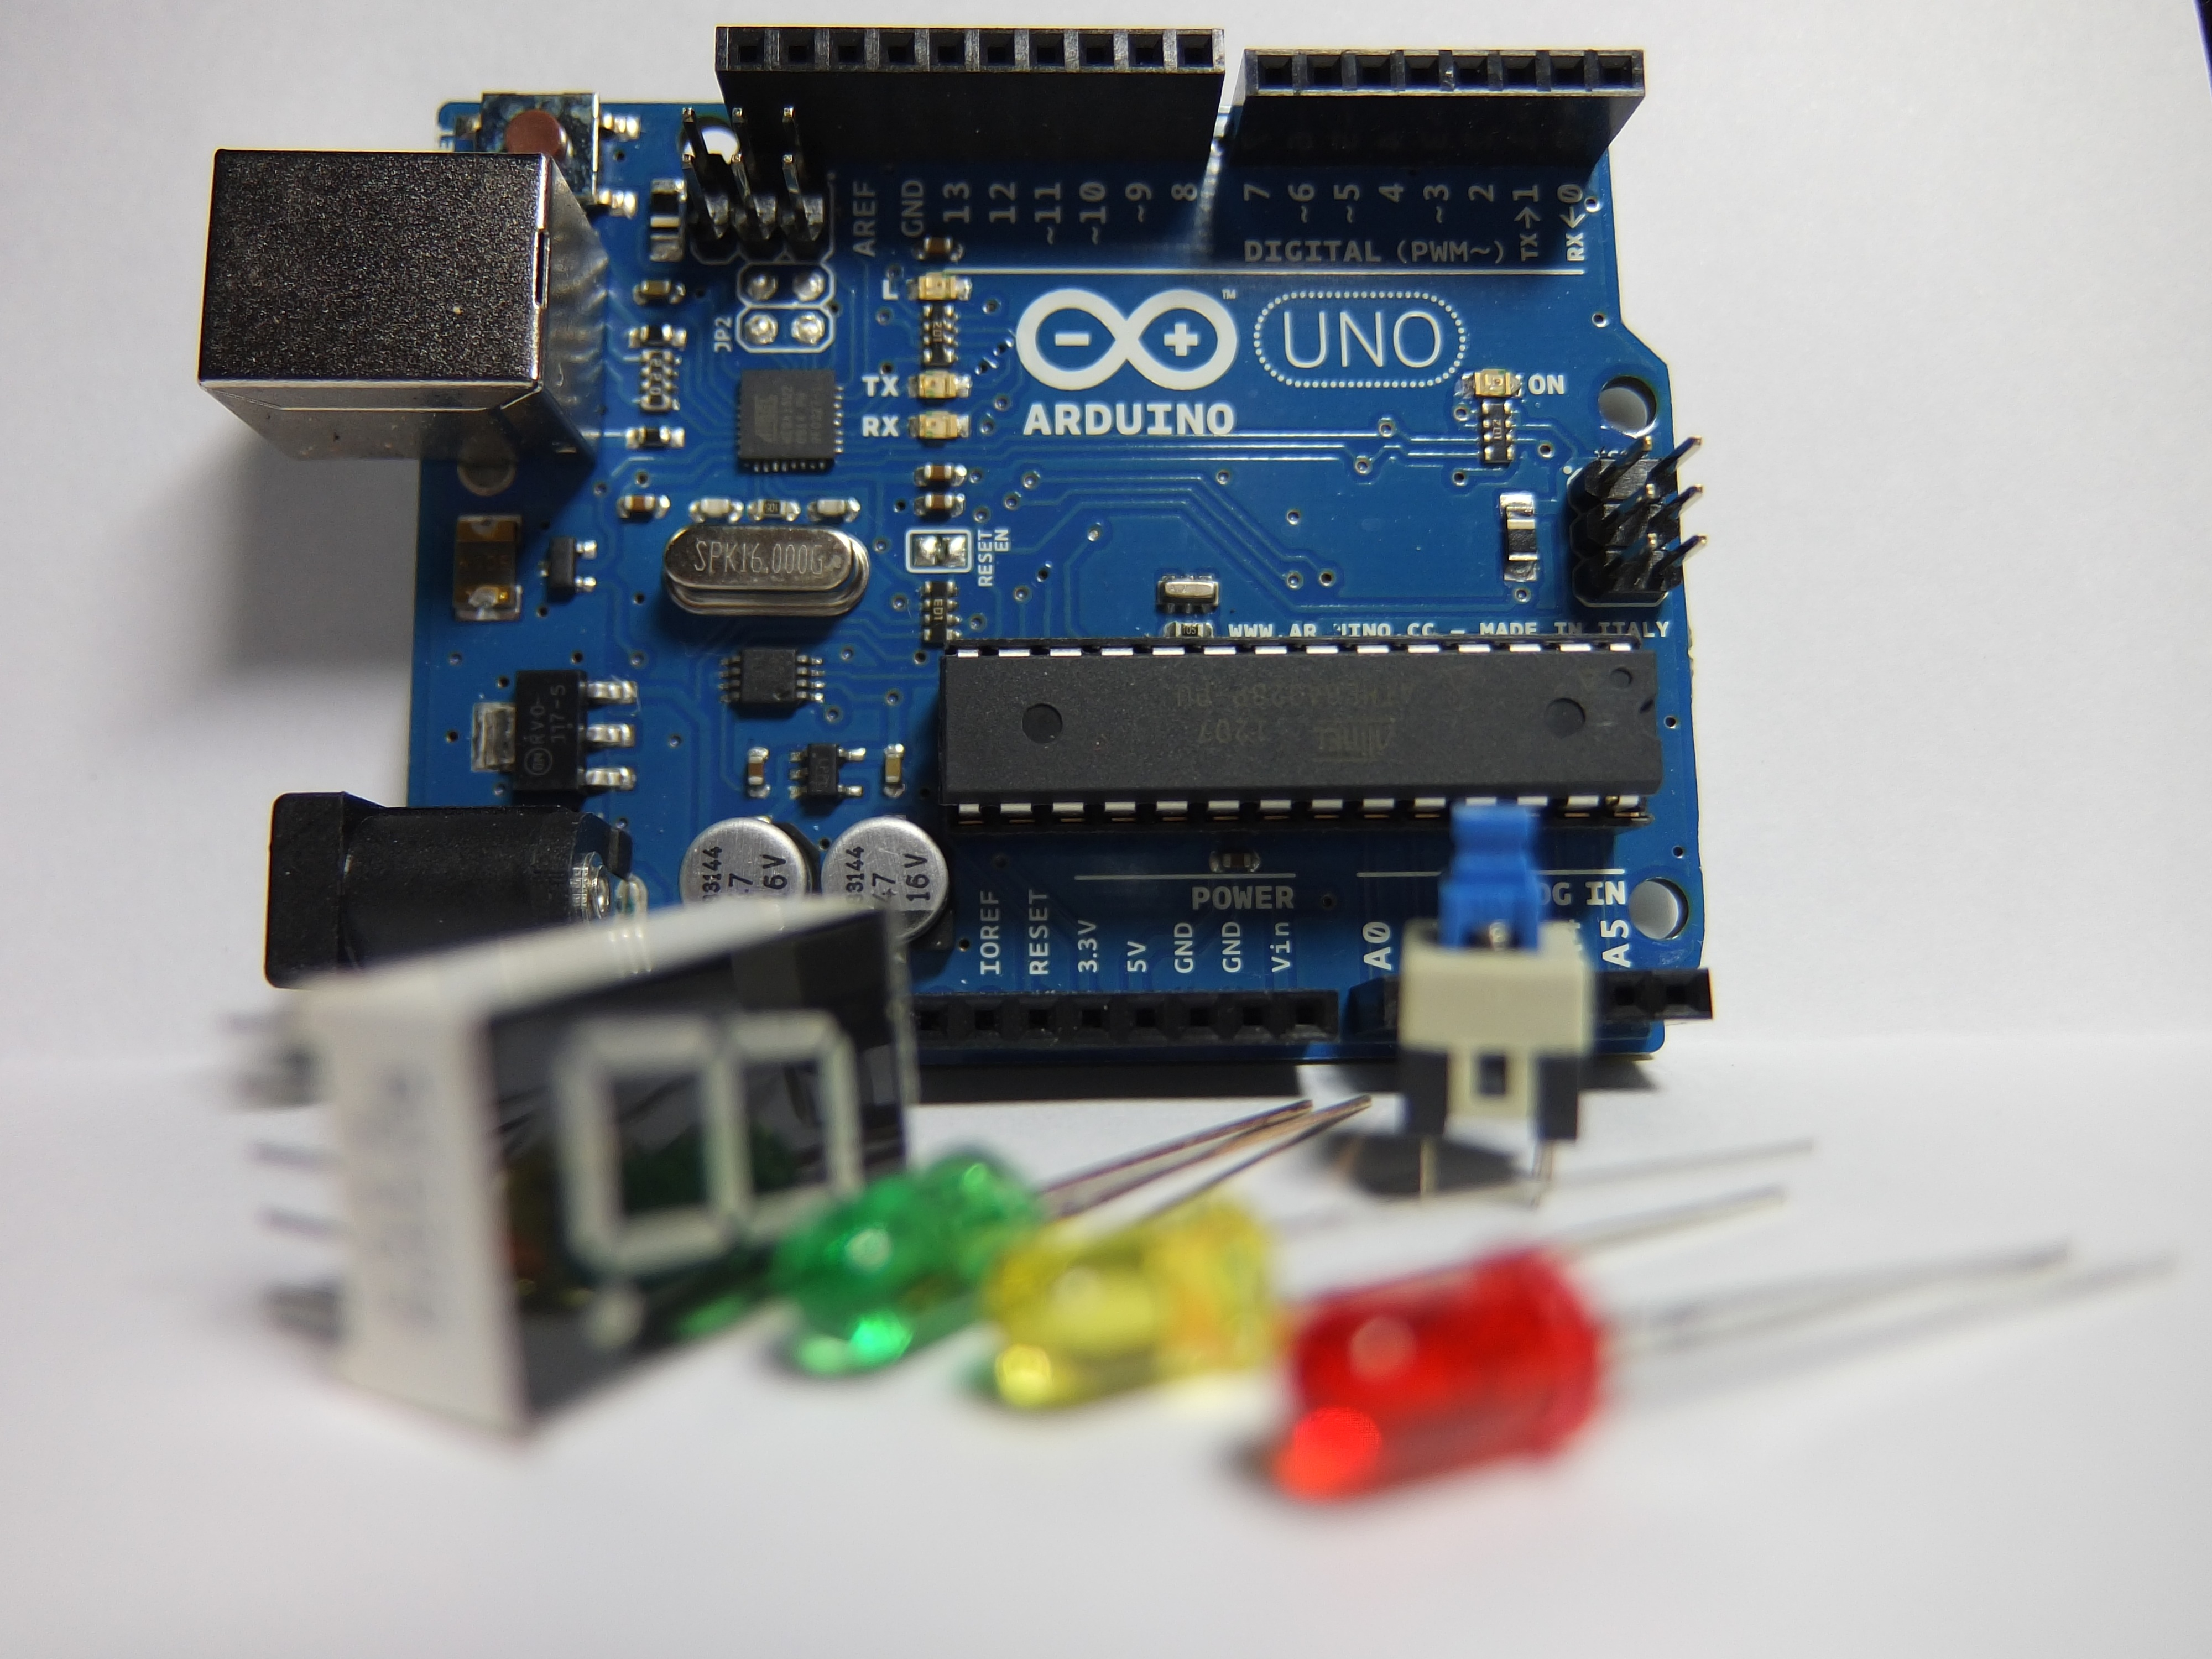 Arduino, Internet of Things